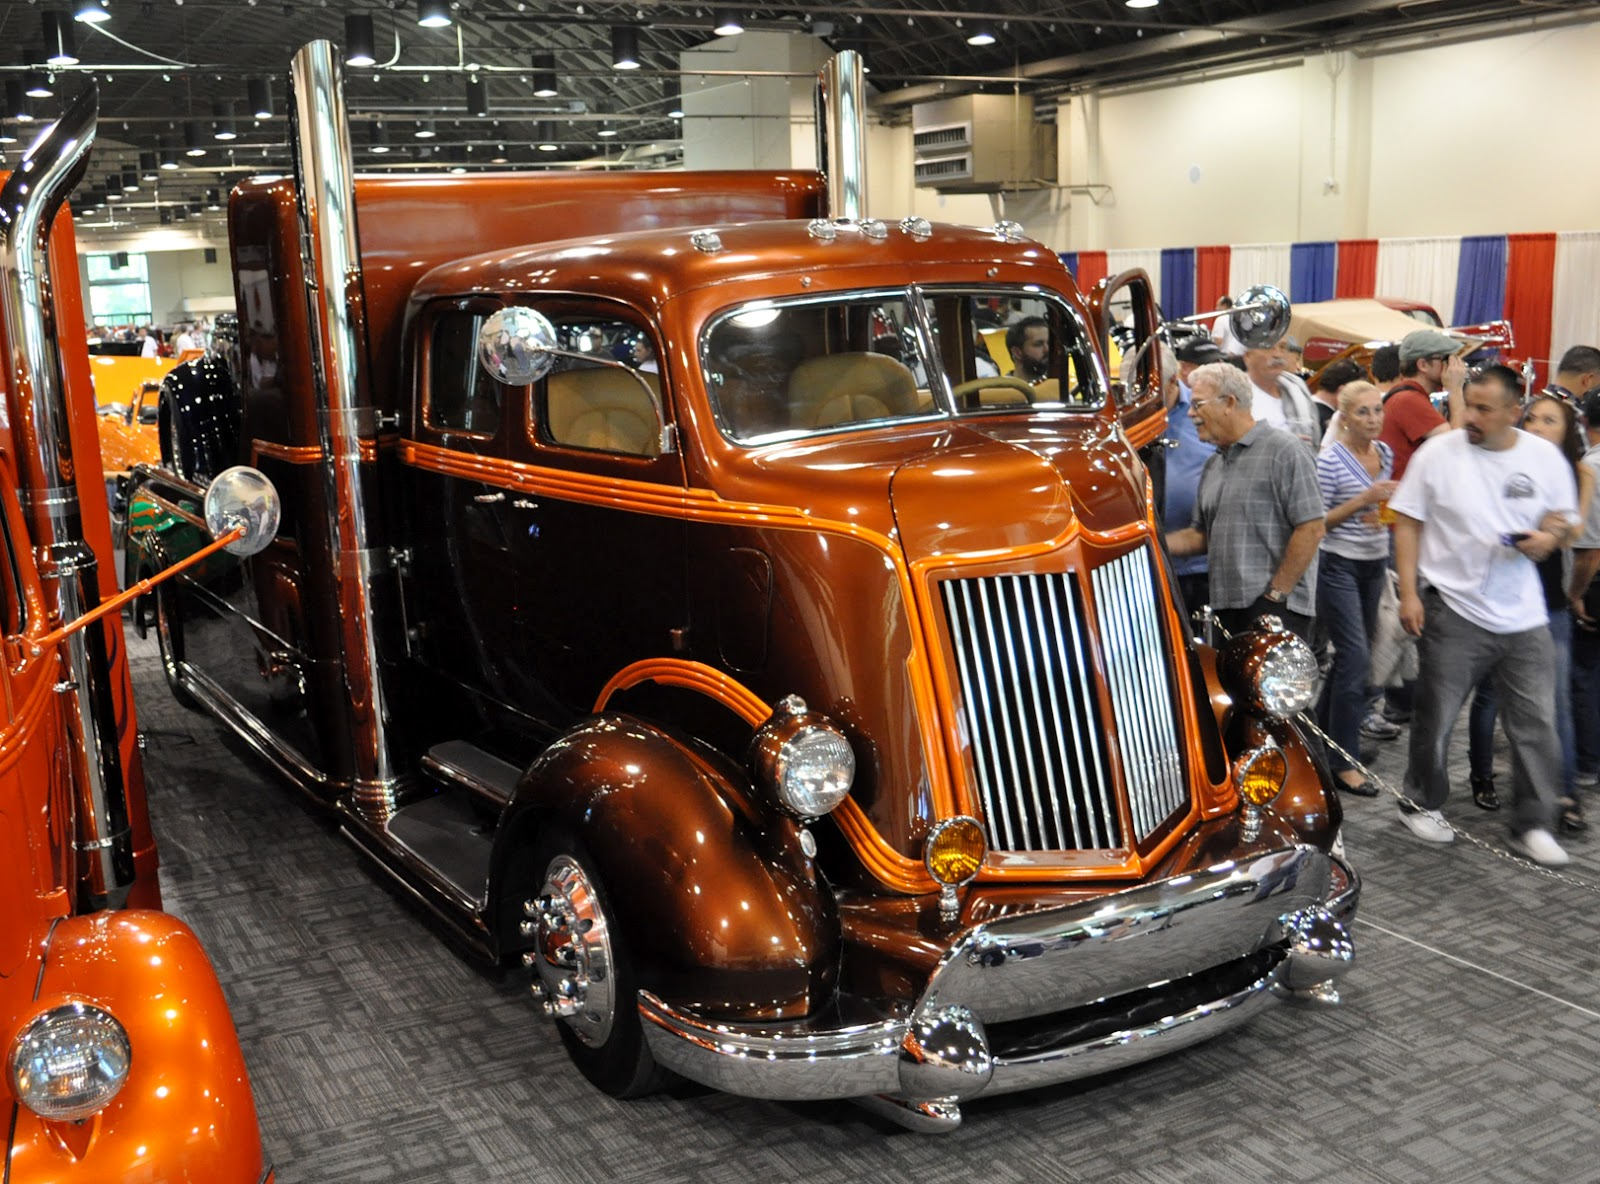 Just A Car Guy: The cool hot rod haulers were teamed up in a display ...